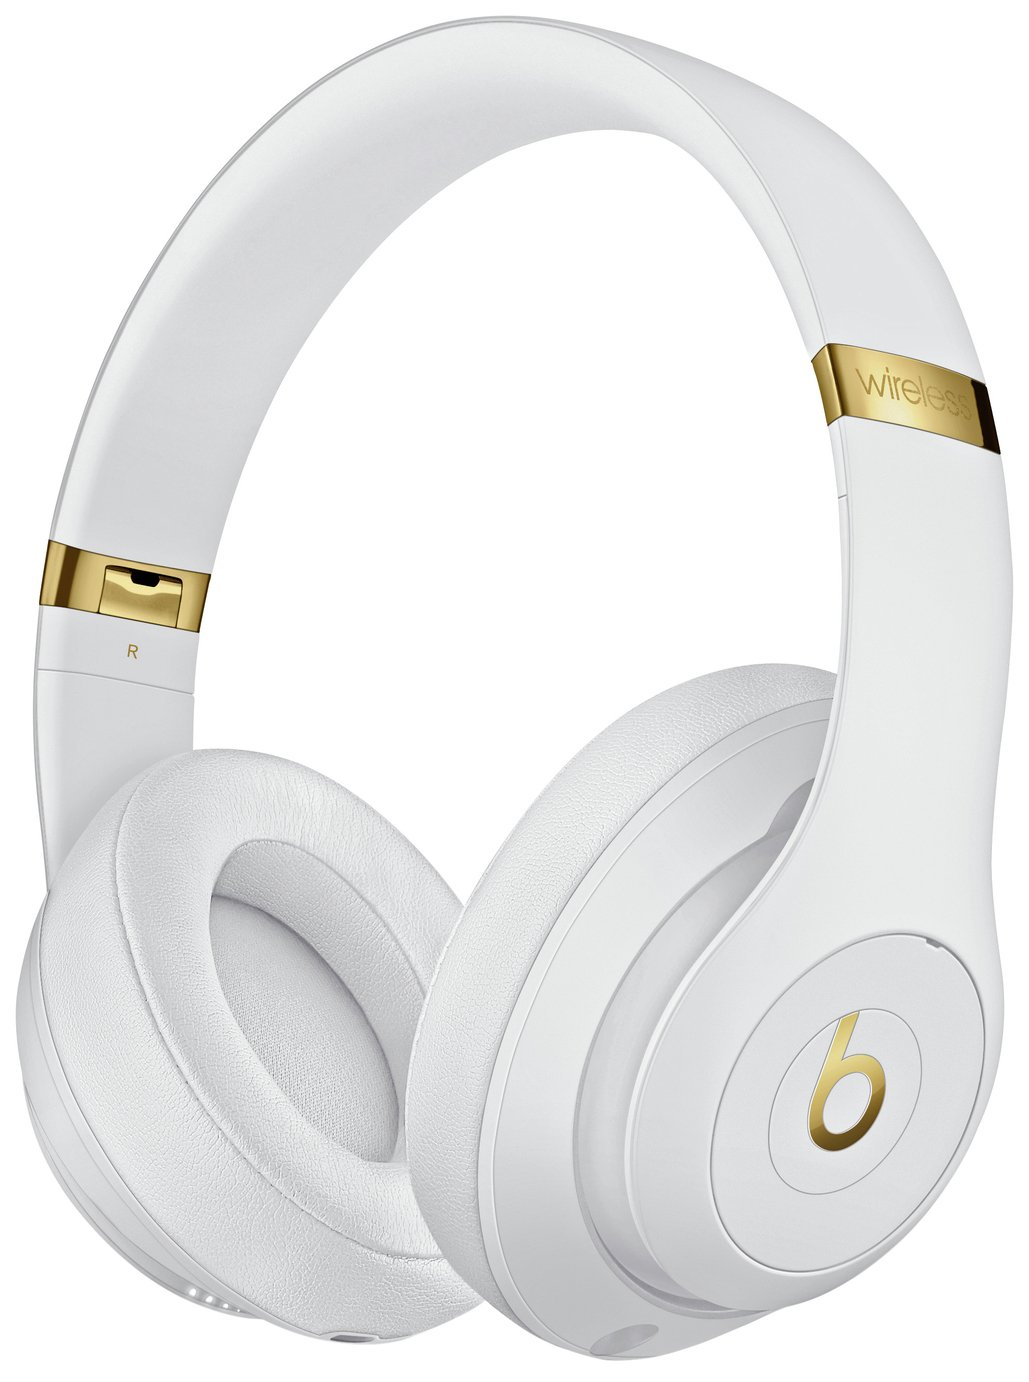 Image of Beats by Dre Studio 3 Wireless Over-Ear Headphones - White